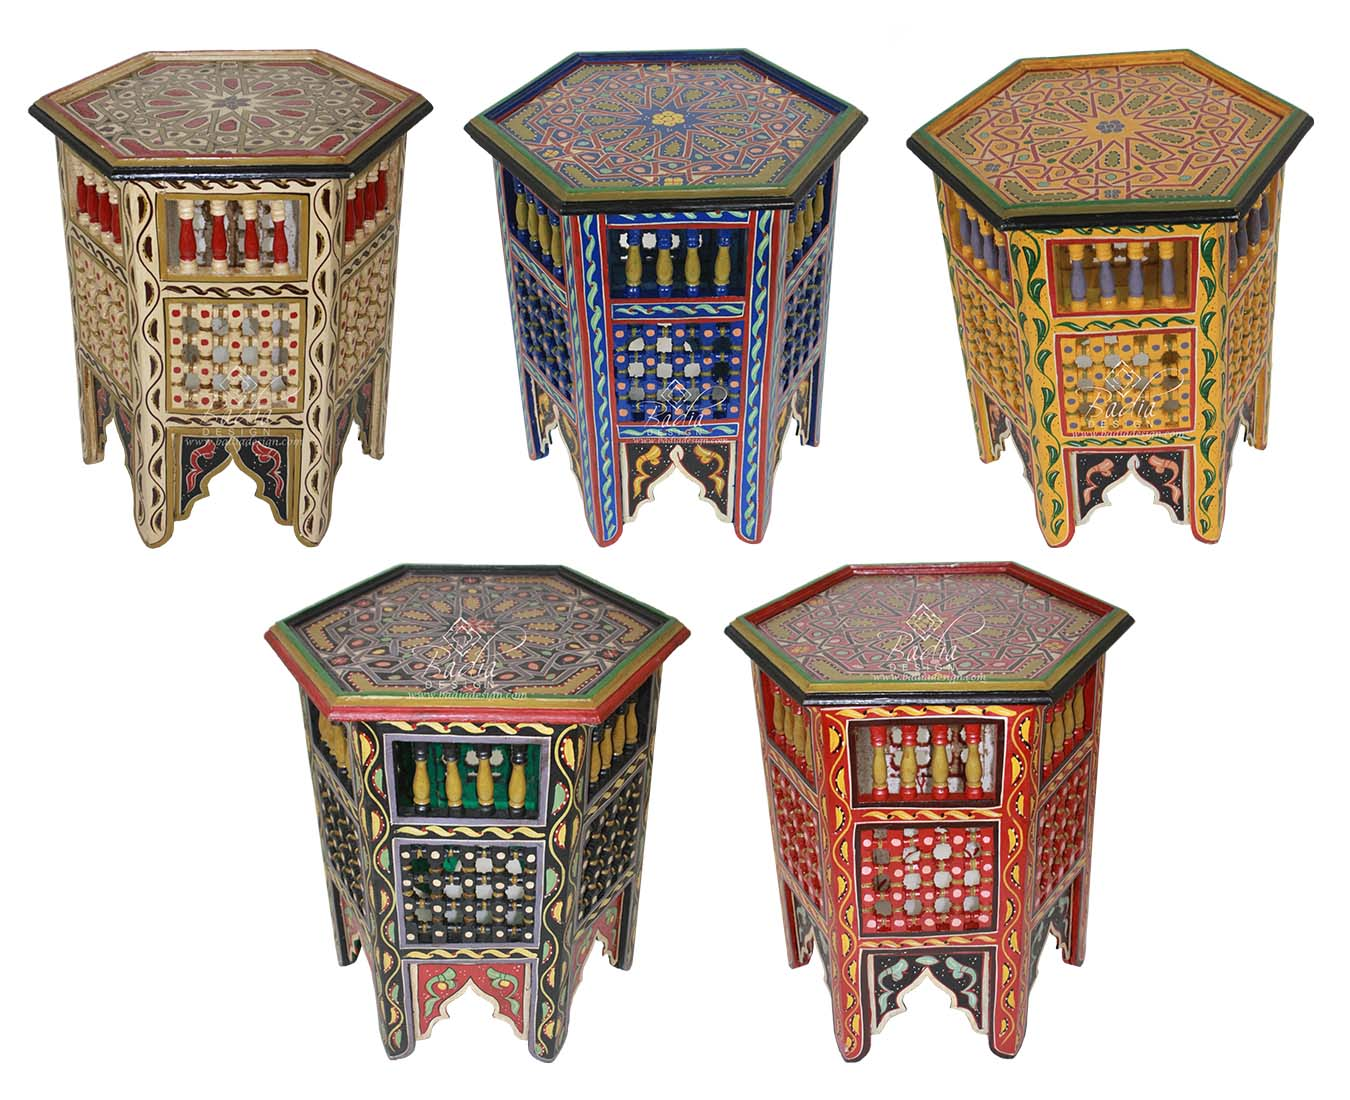 moroccan-multi-color-hand-painted-side-table-hp329.jpg